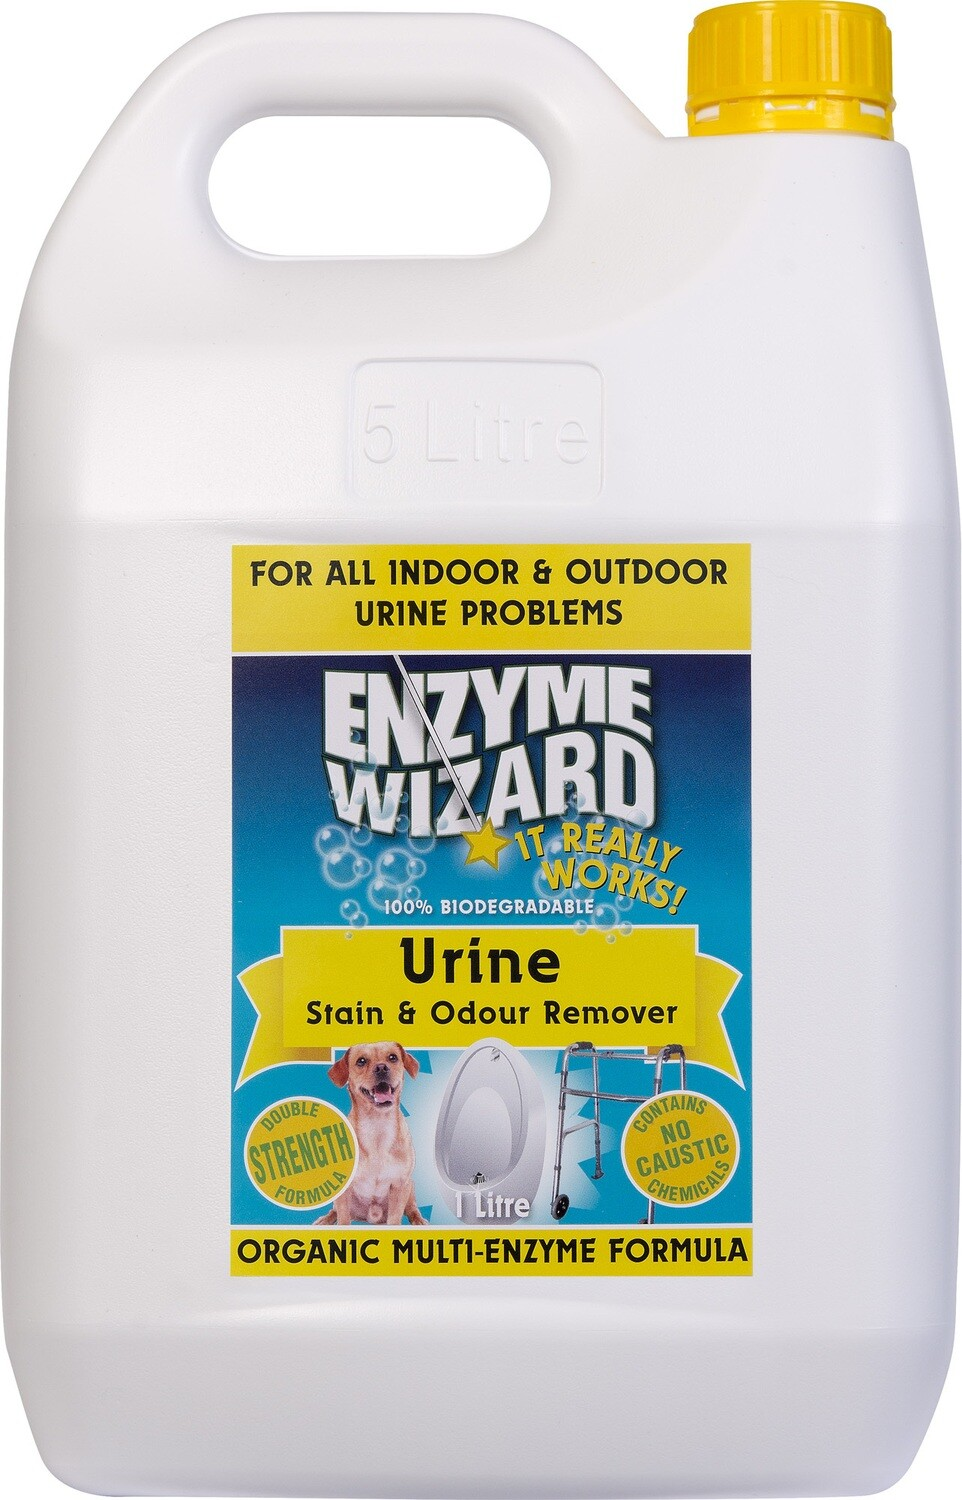 Enzyme Wizard Urine Stain & Odour Remover 5 lt